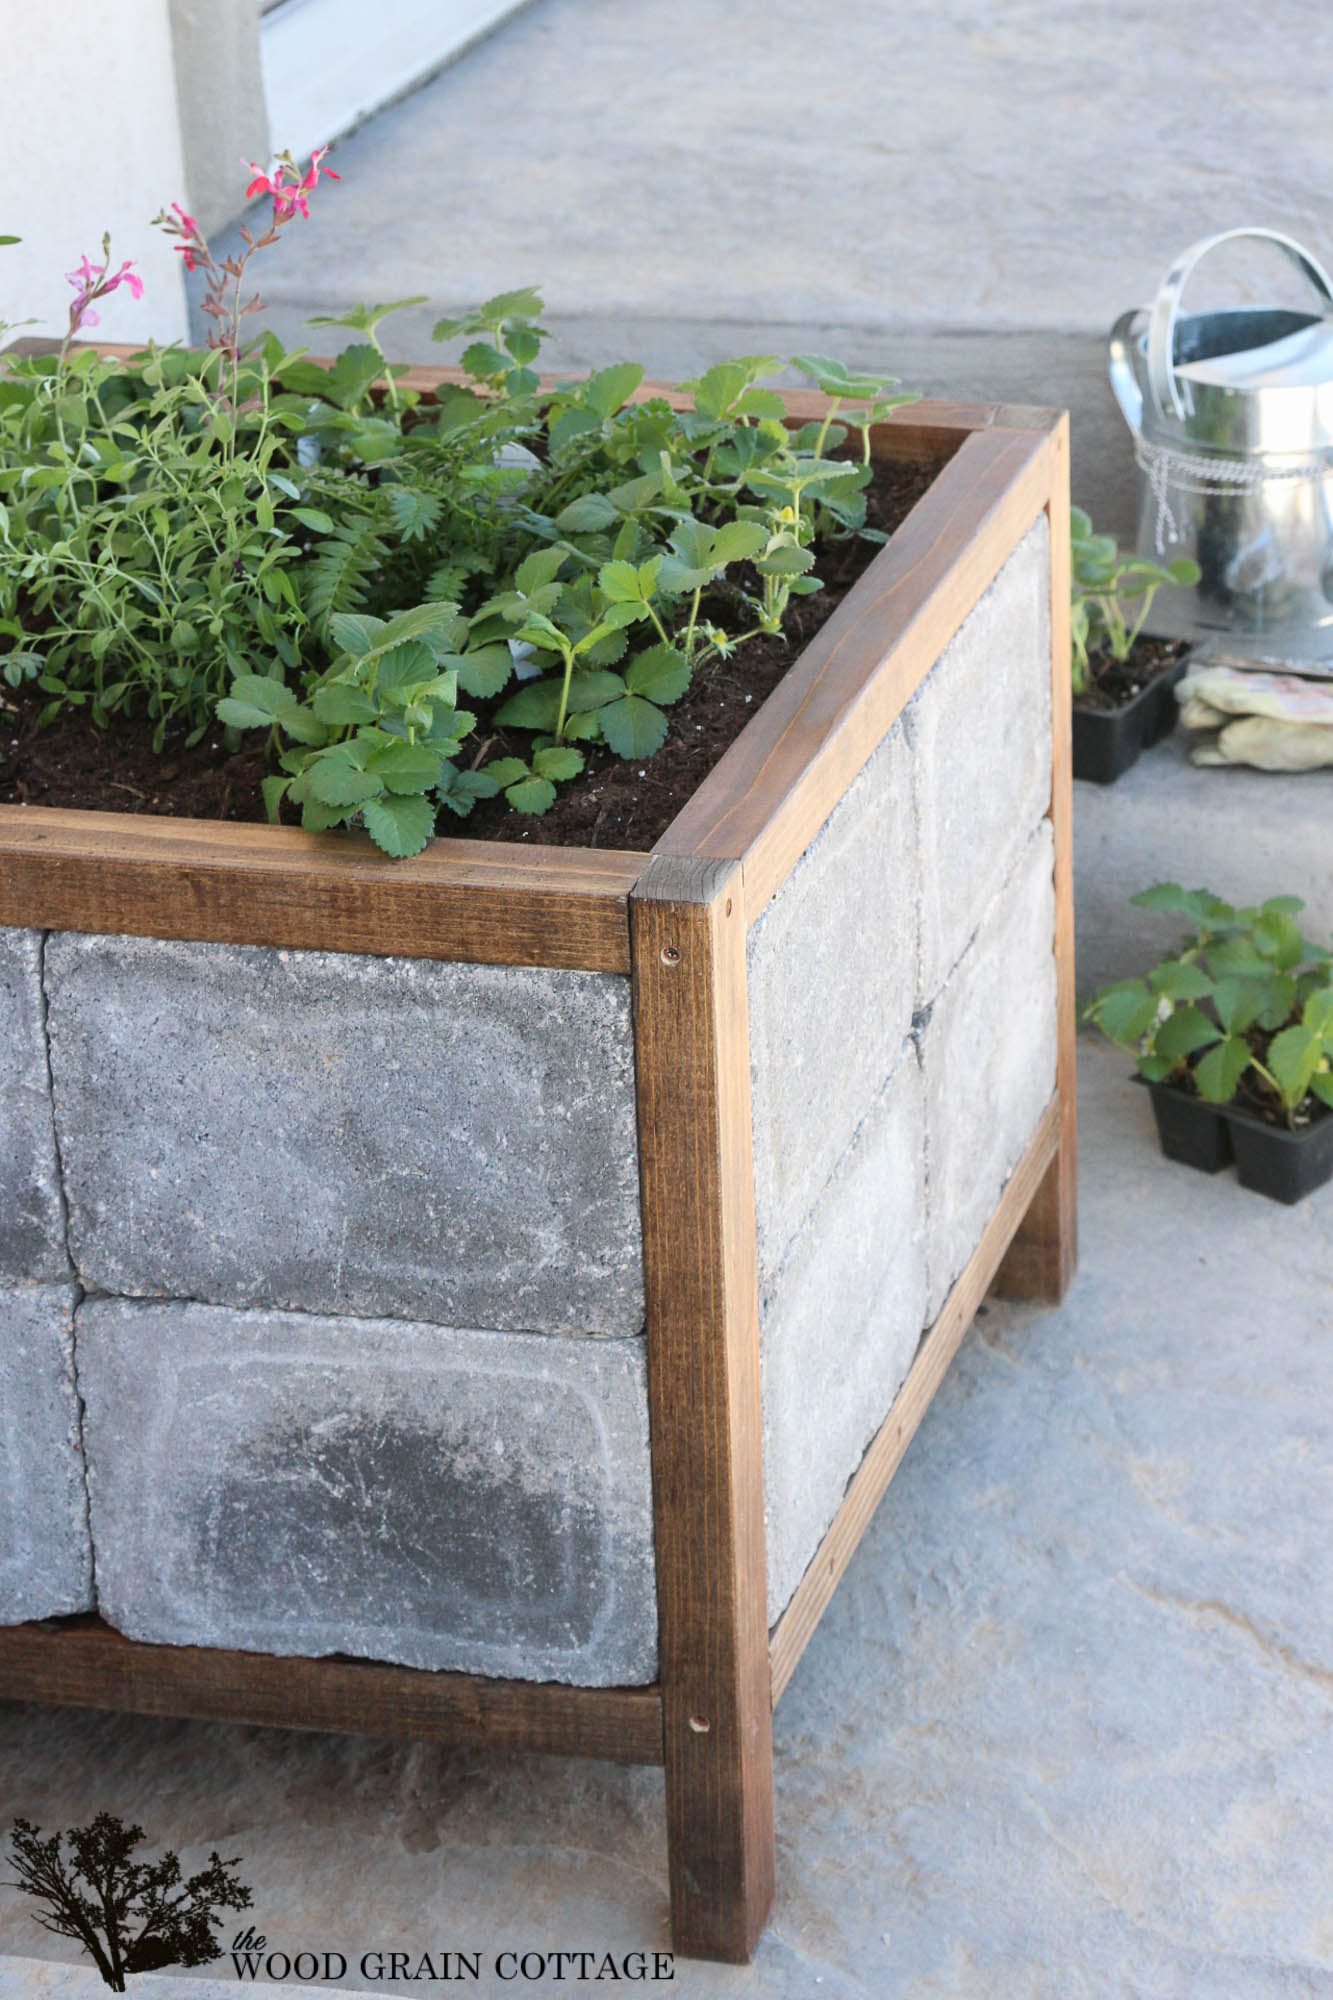 Best ideas about DIY Wood Planter . Save or Pin DIY Paver Planter The Wood Grain Cottage Now.